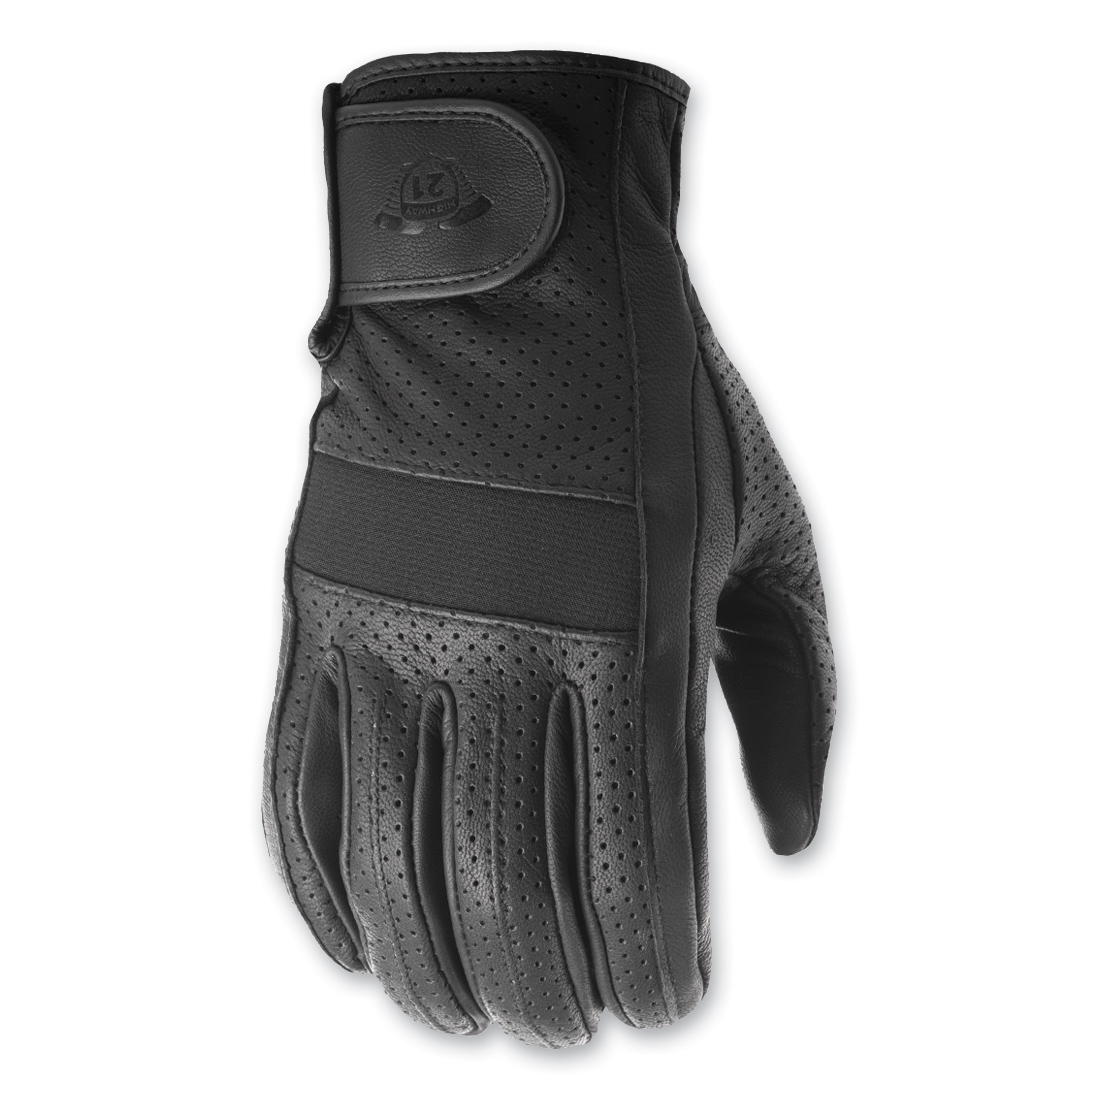 Highway 21 Men's Jab Perforated Touchscreen Black Gloves